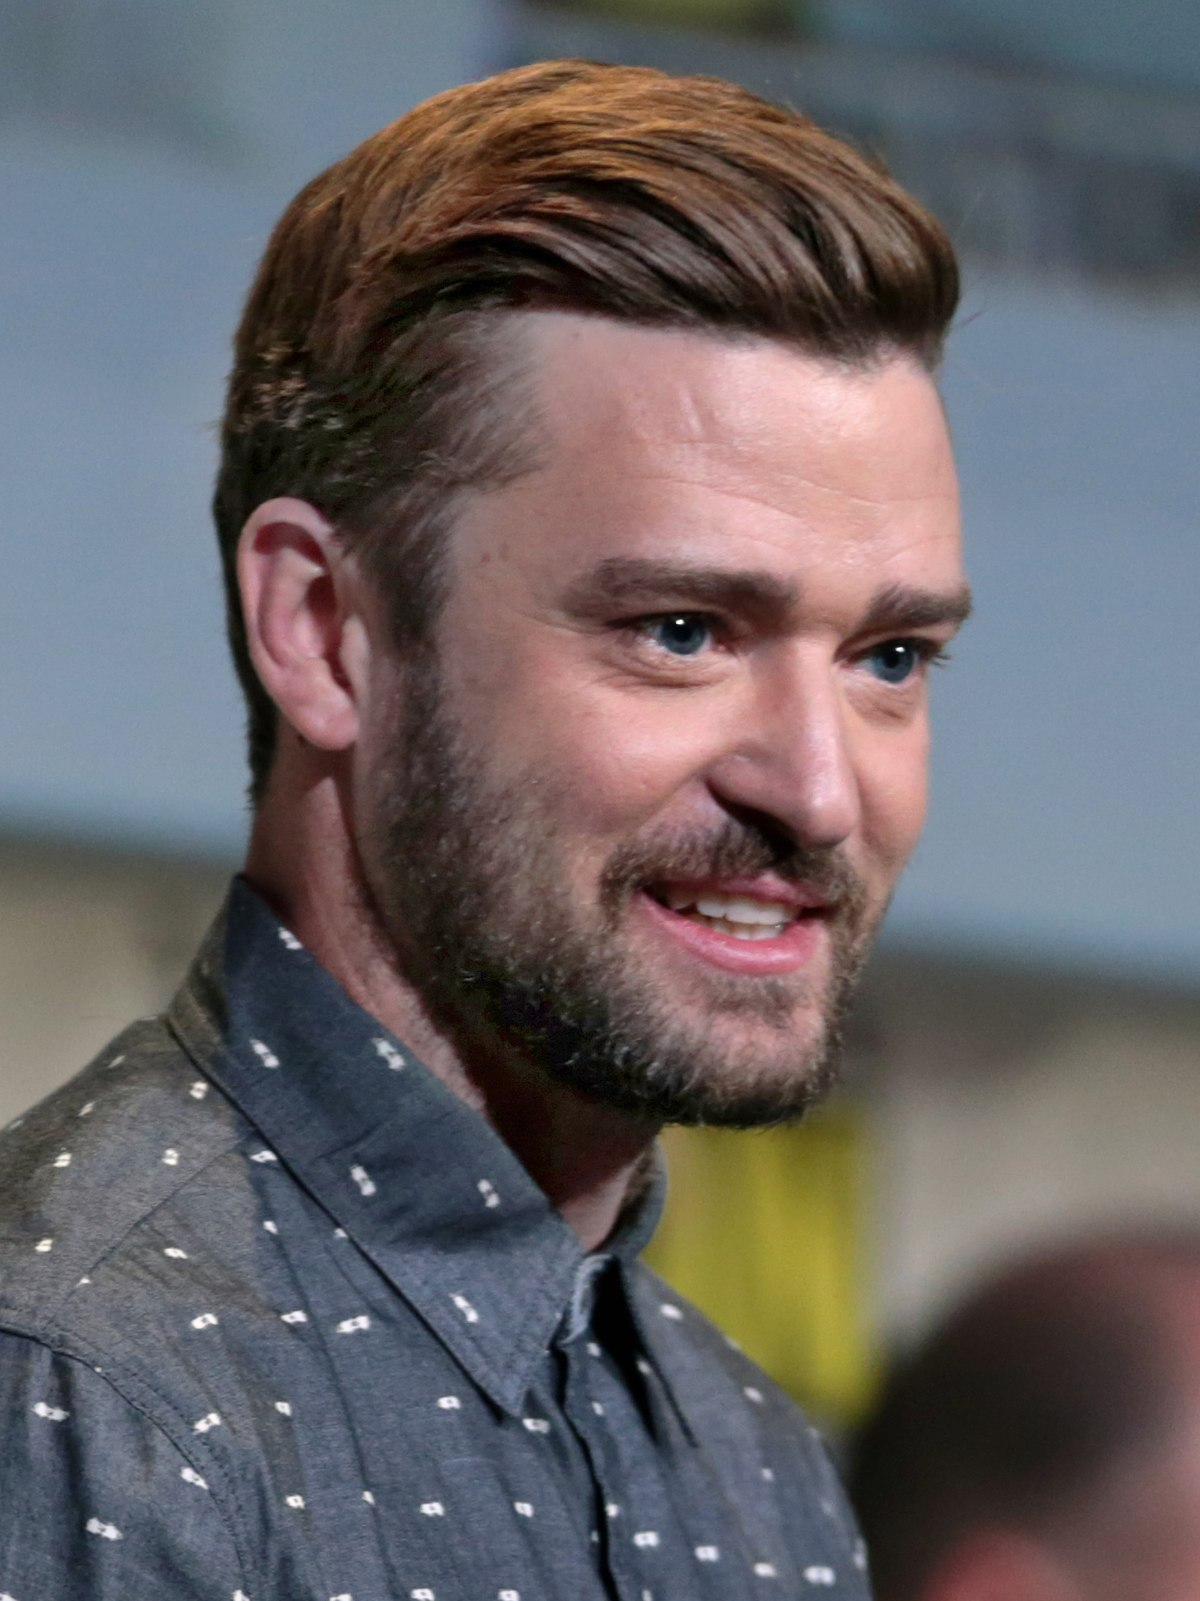 Justin Timberlake Private Life Info Offered By The Star Outside of being a Pop Star!